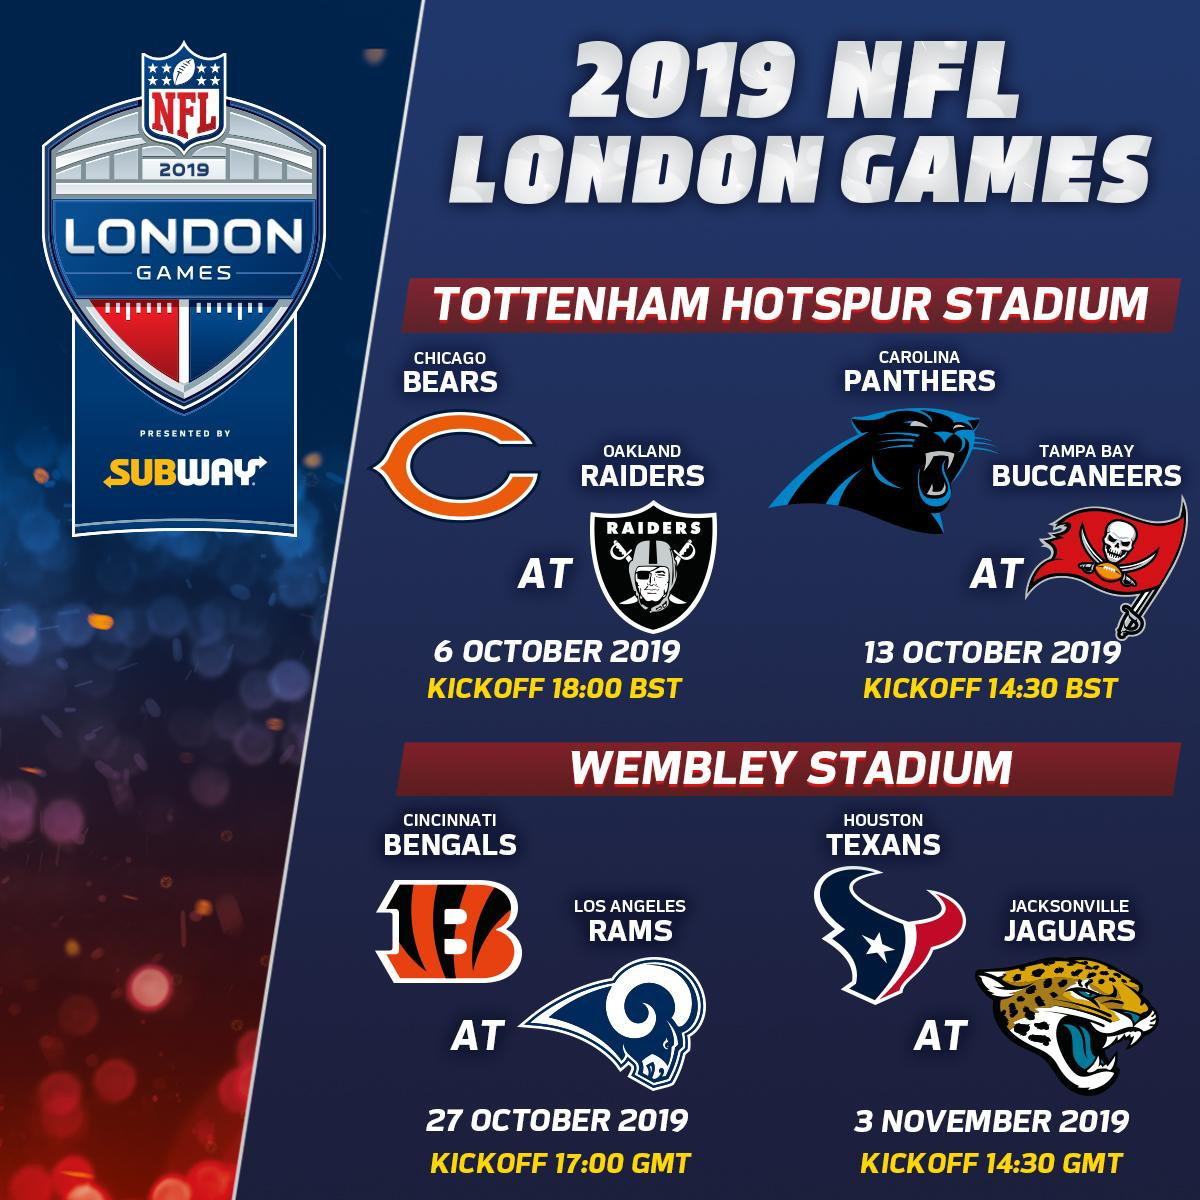 Nfl Uk On Twitter The 2019 London Games Schedule